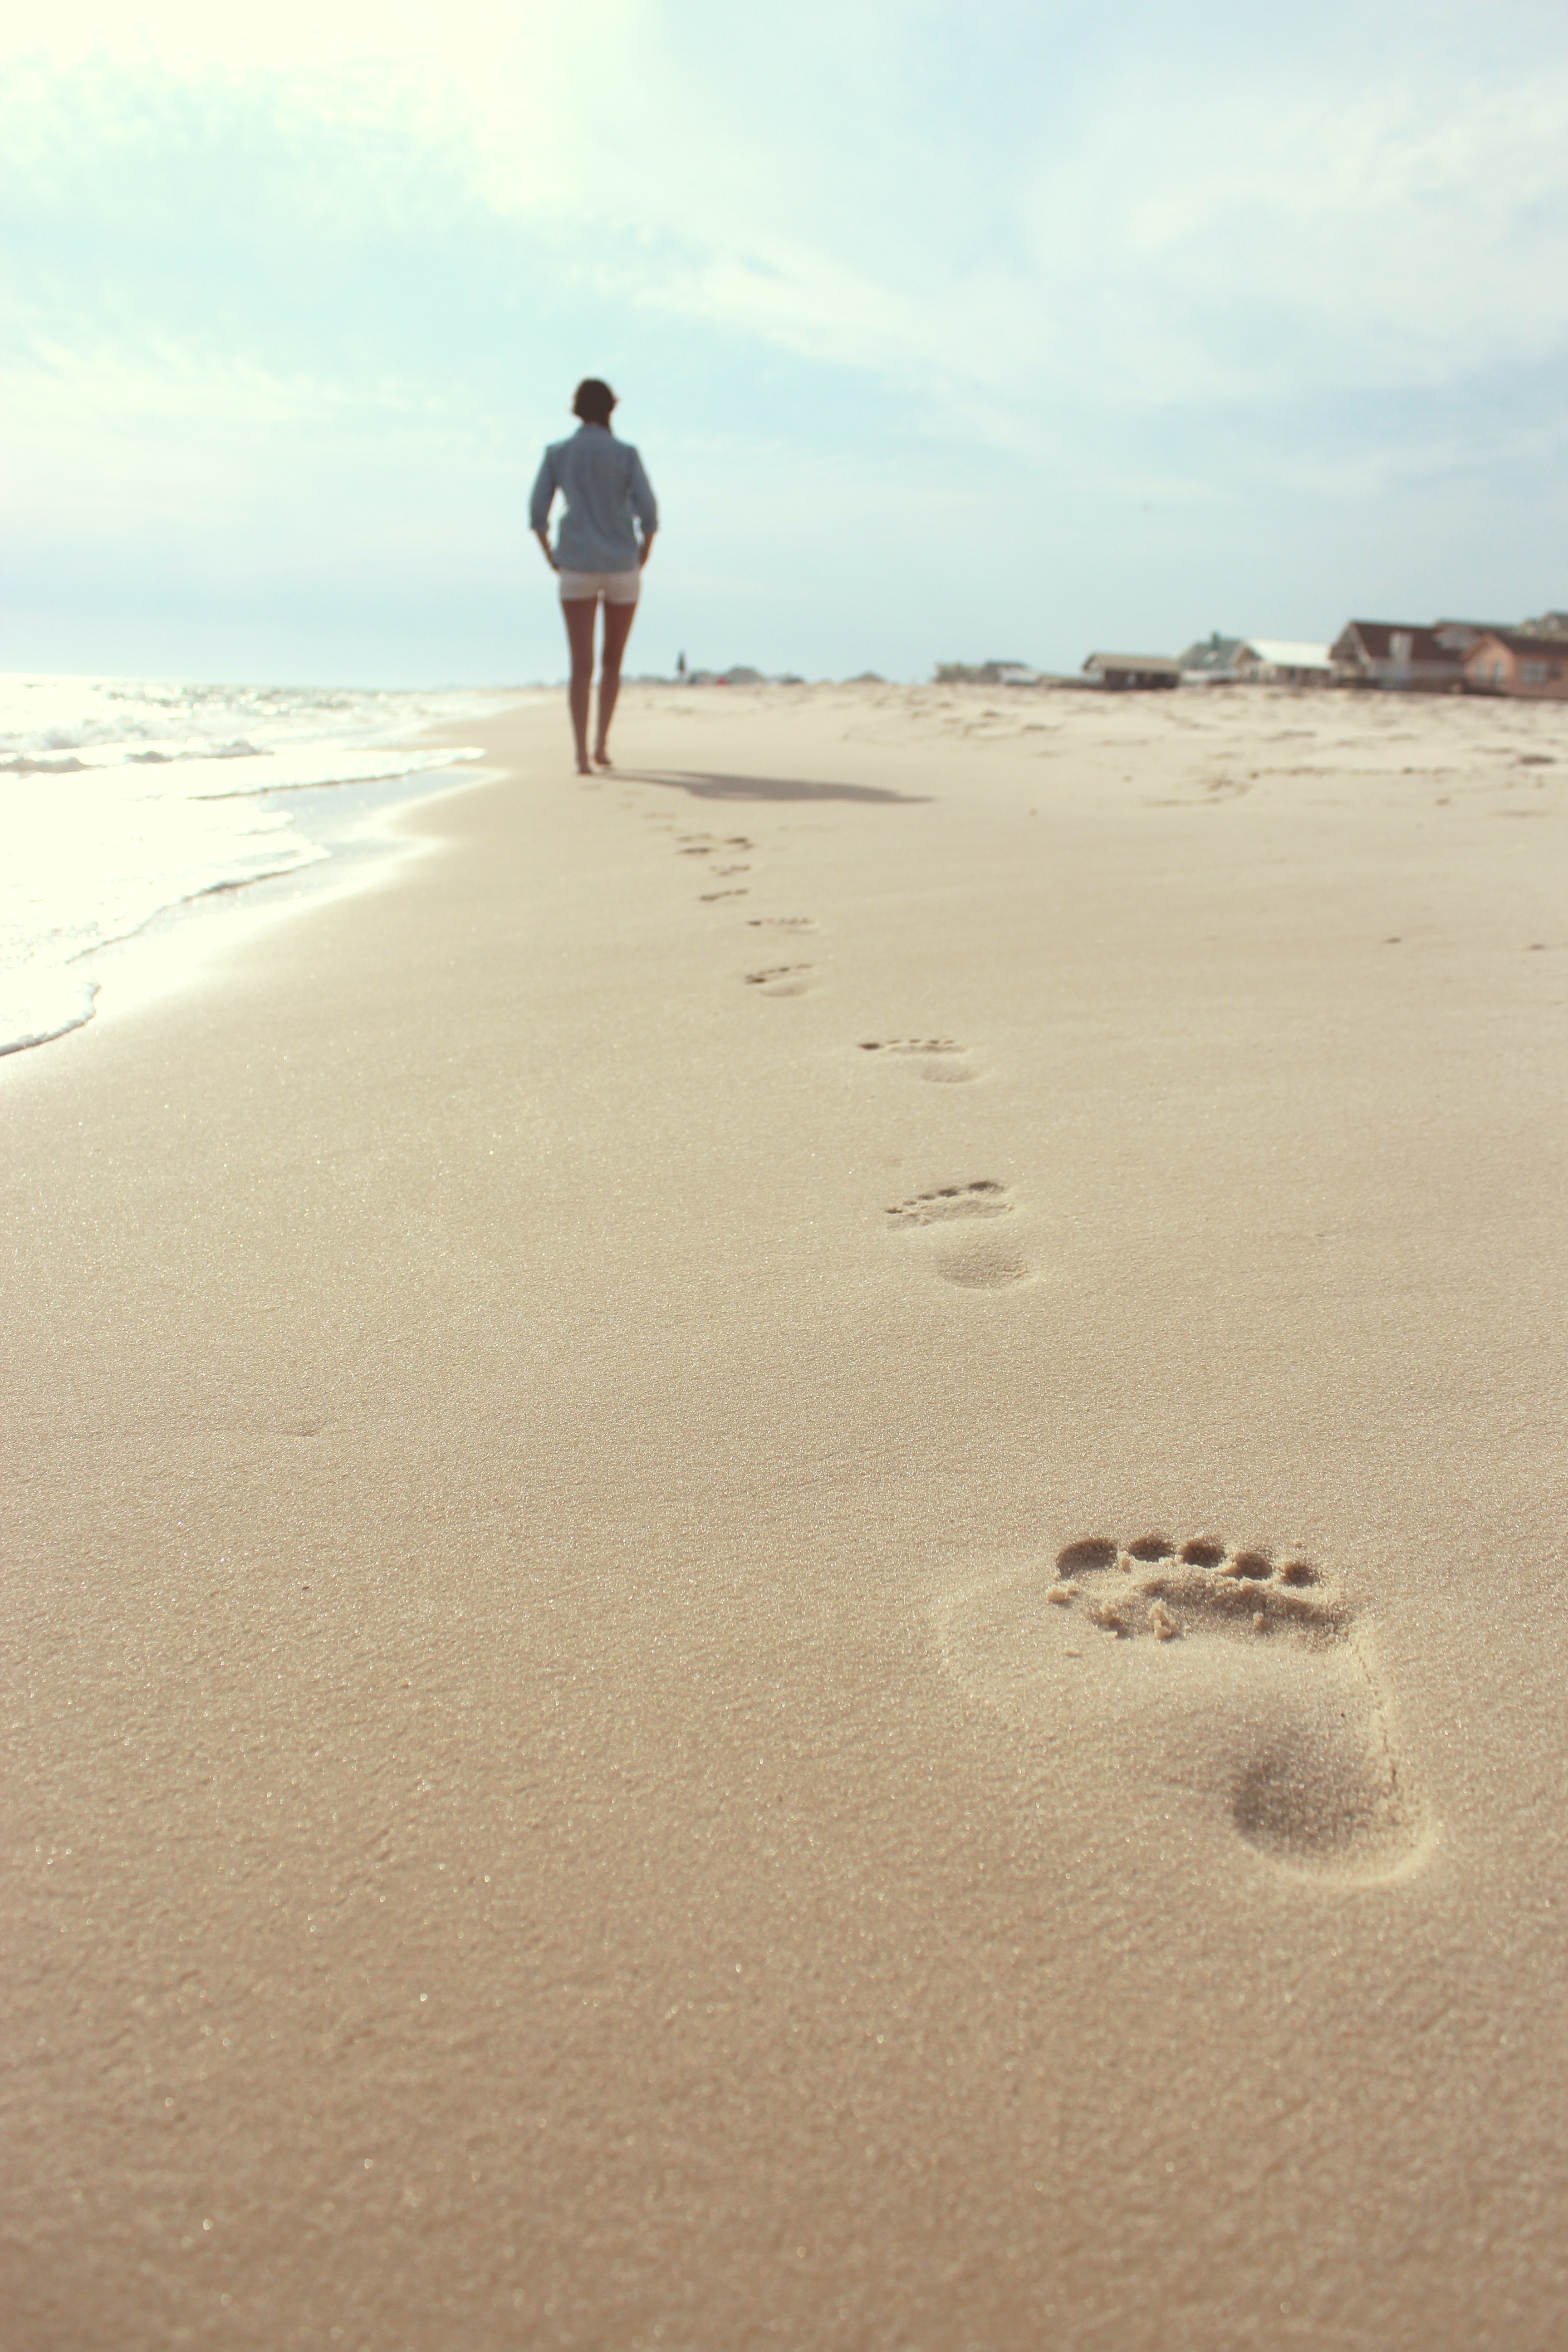 Footsteps of a woman walking on a sand beach